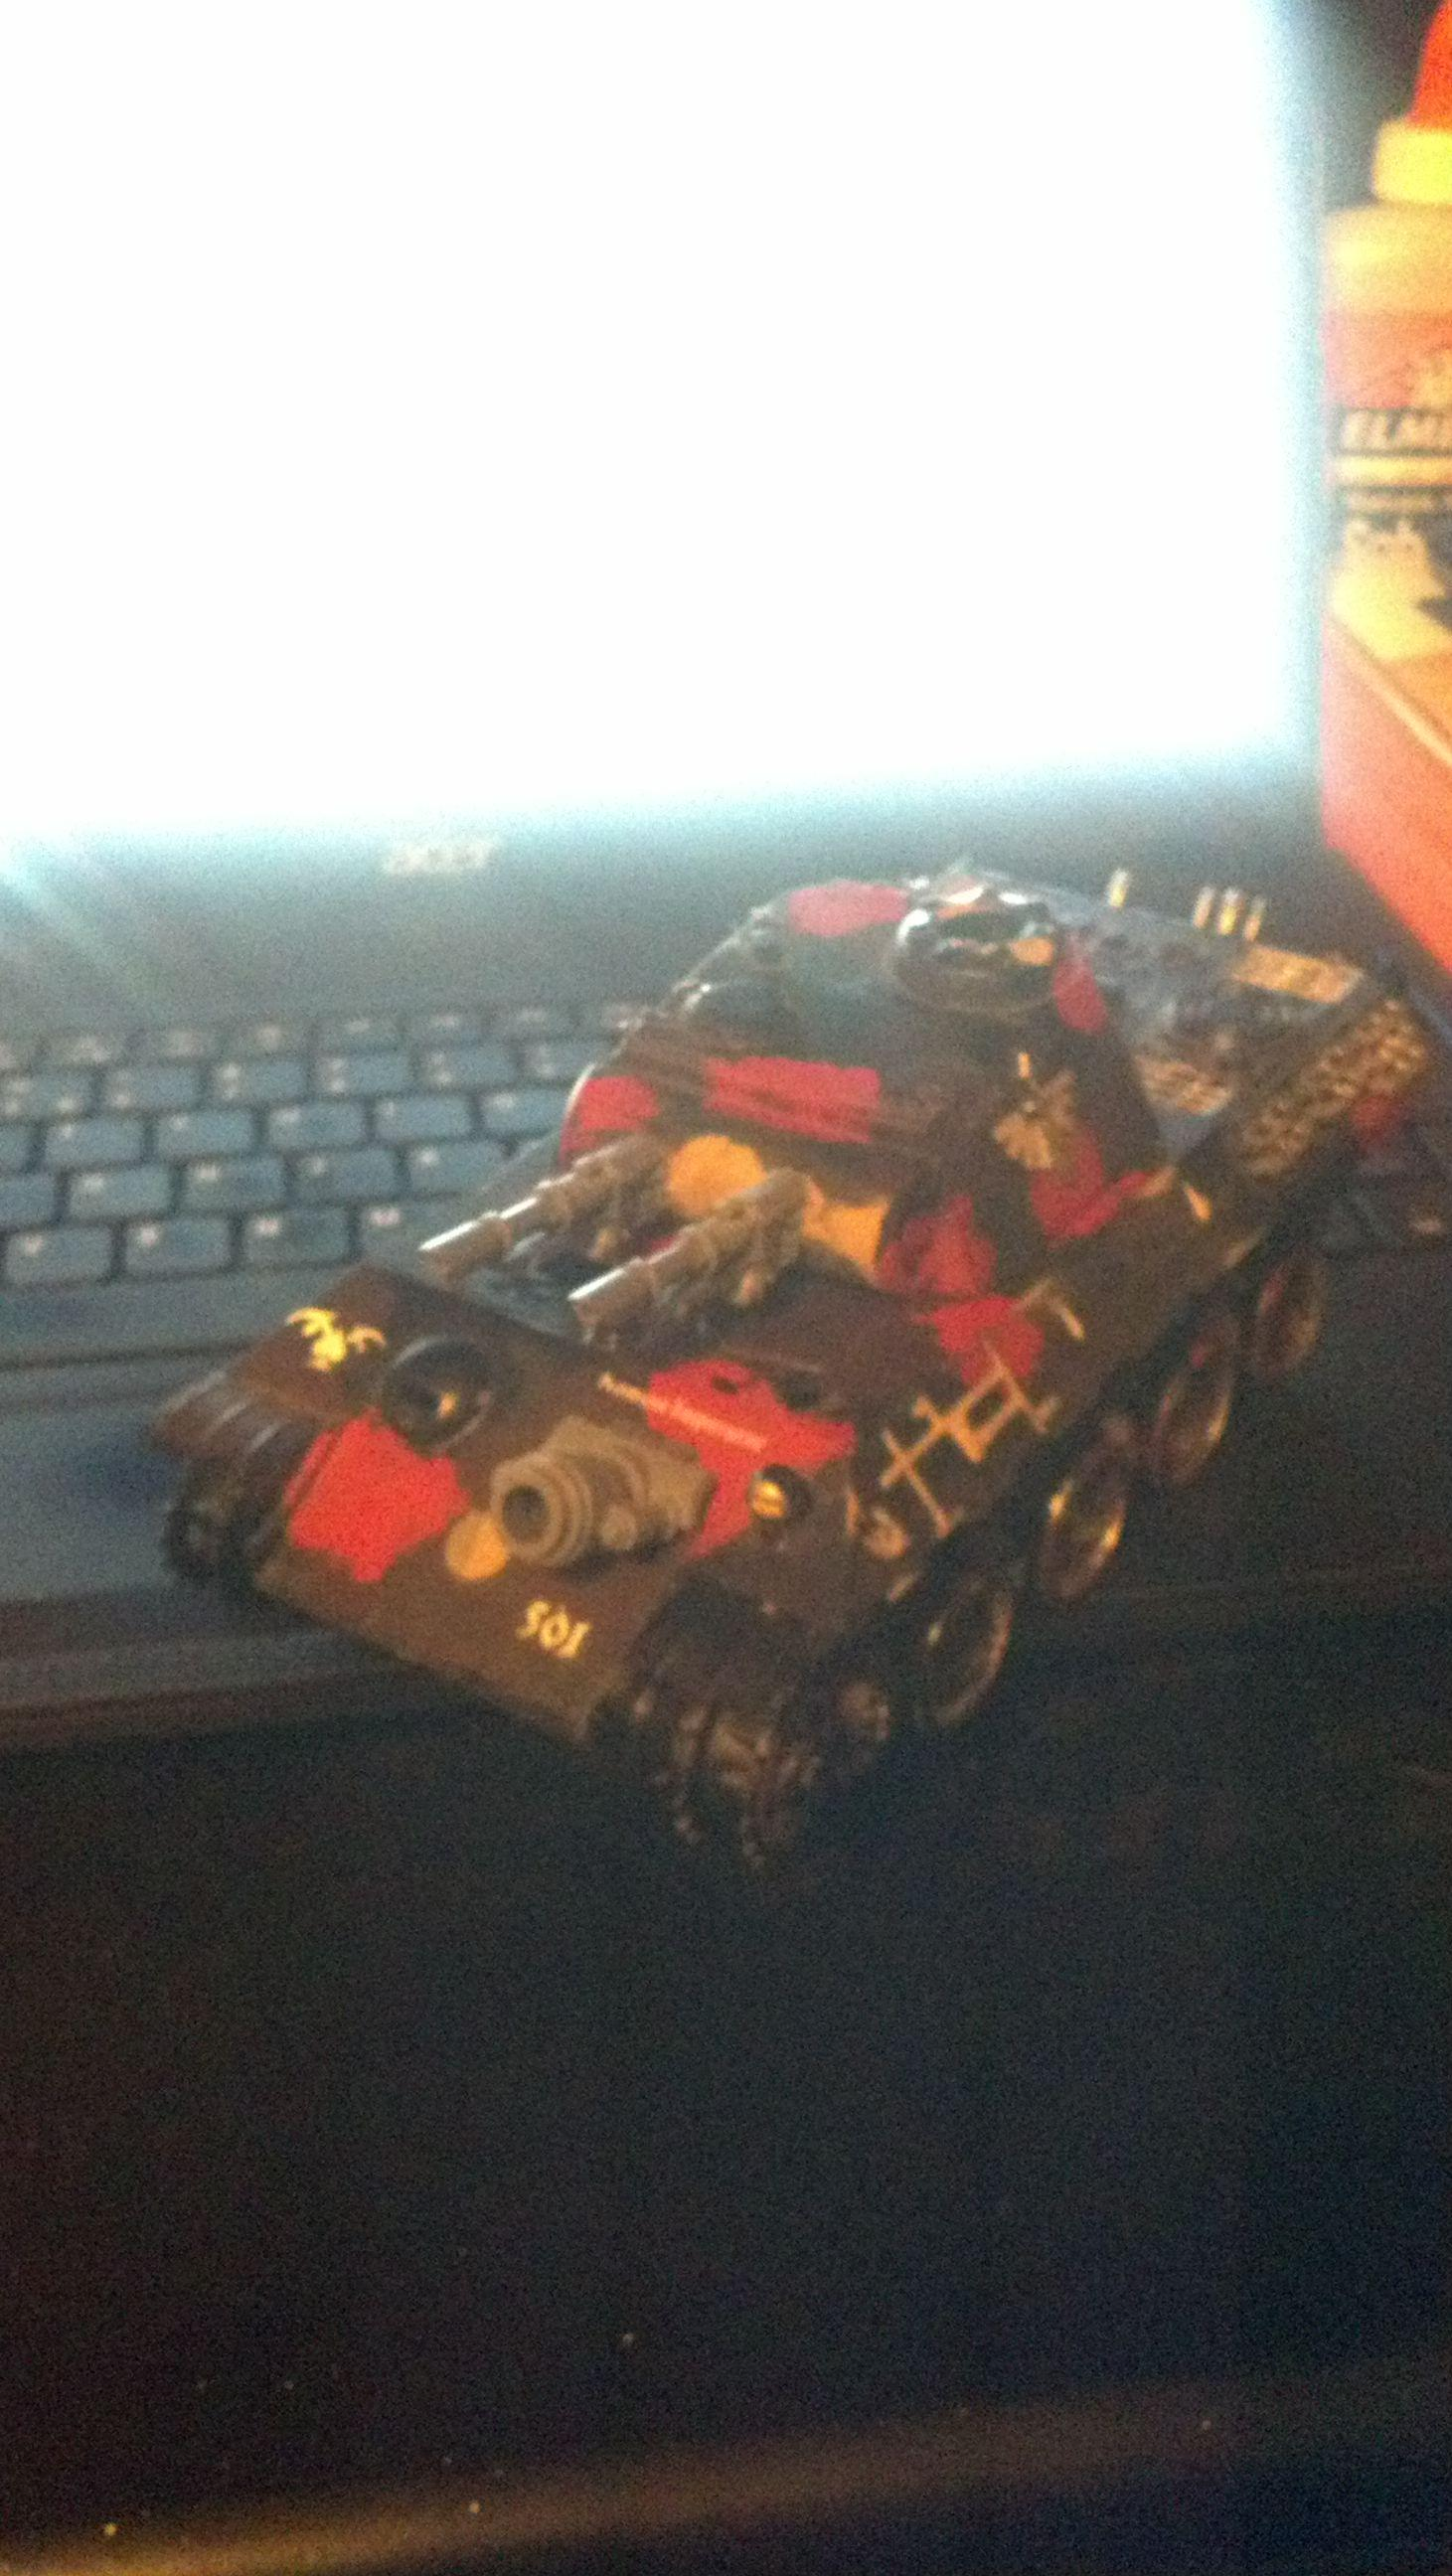 Ignore the shody paint job, and i know it's a bad pic but I don't have access to a proper camera